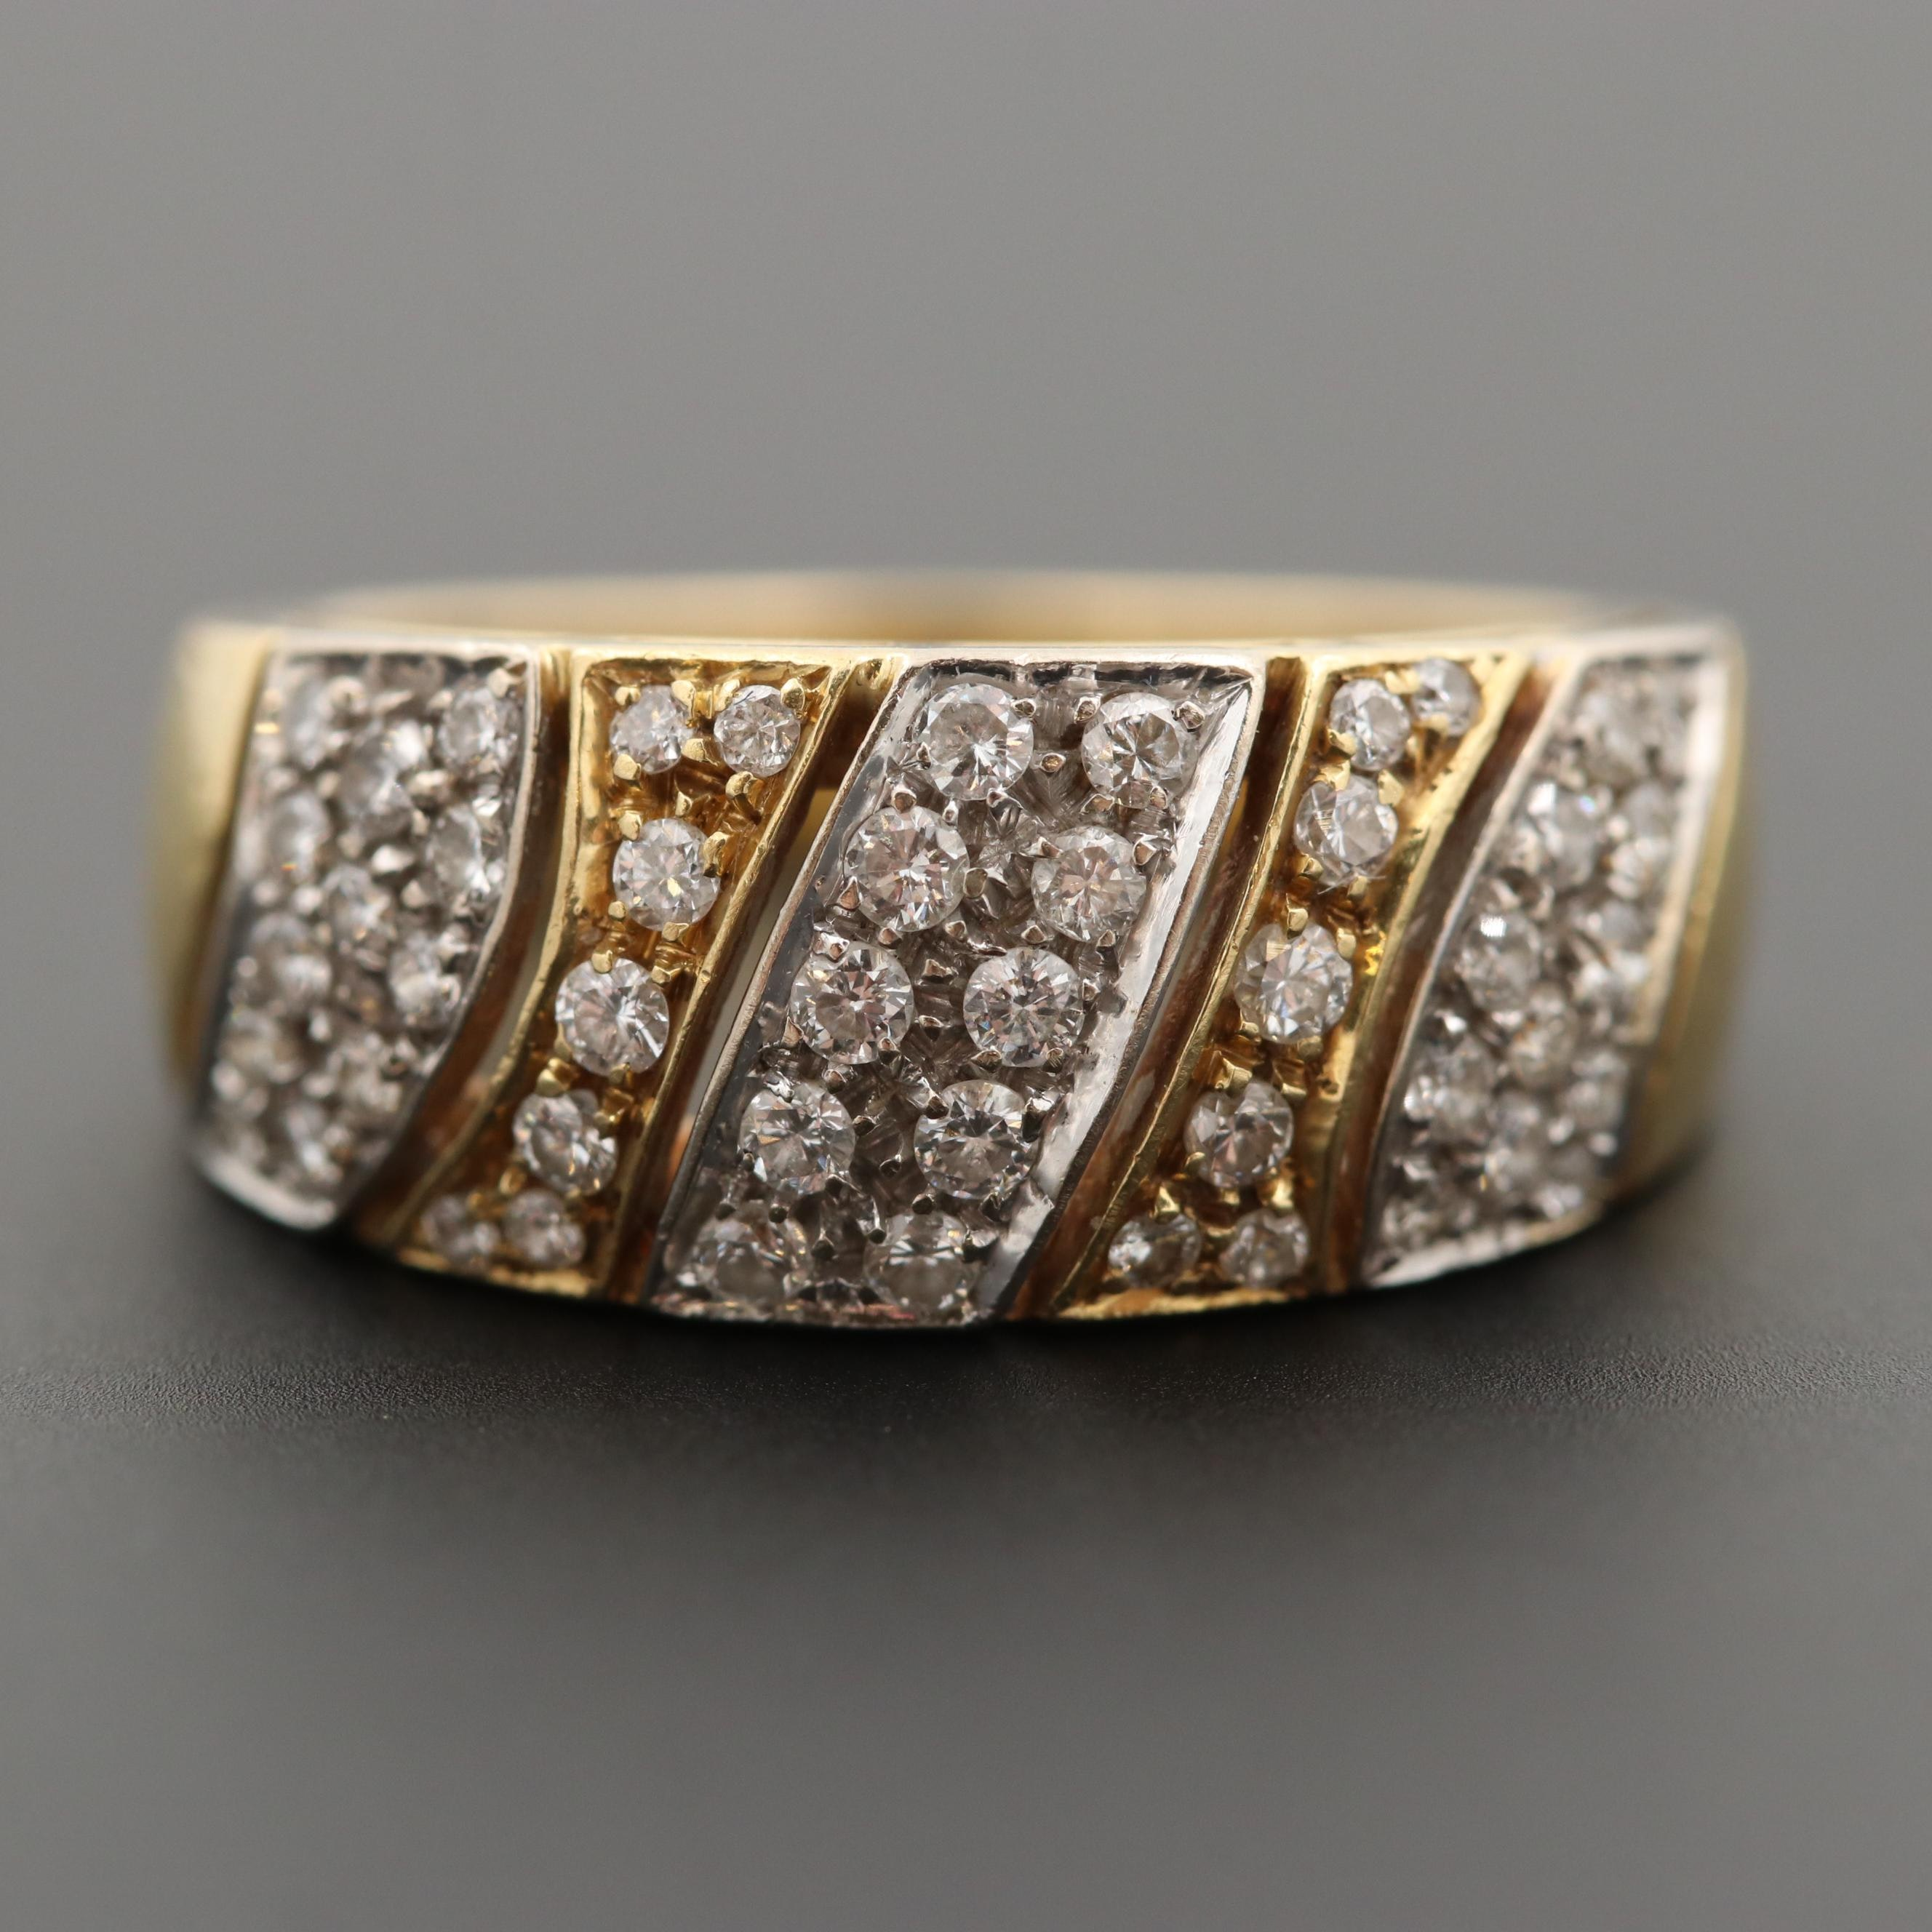 18K Yellow Gold Diamond Ring with White Gold Mountings